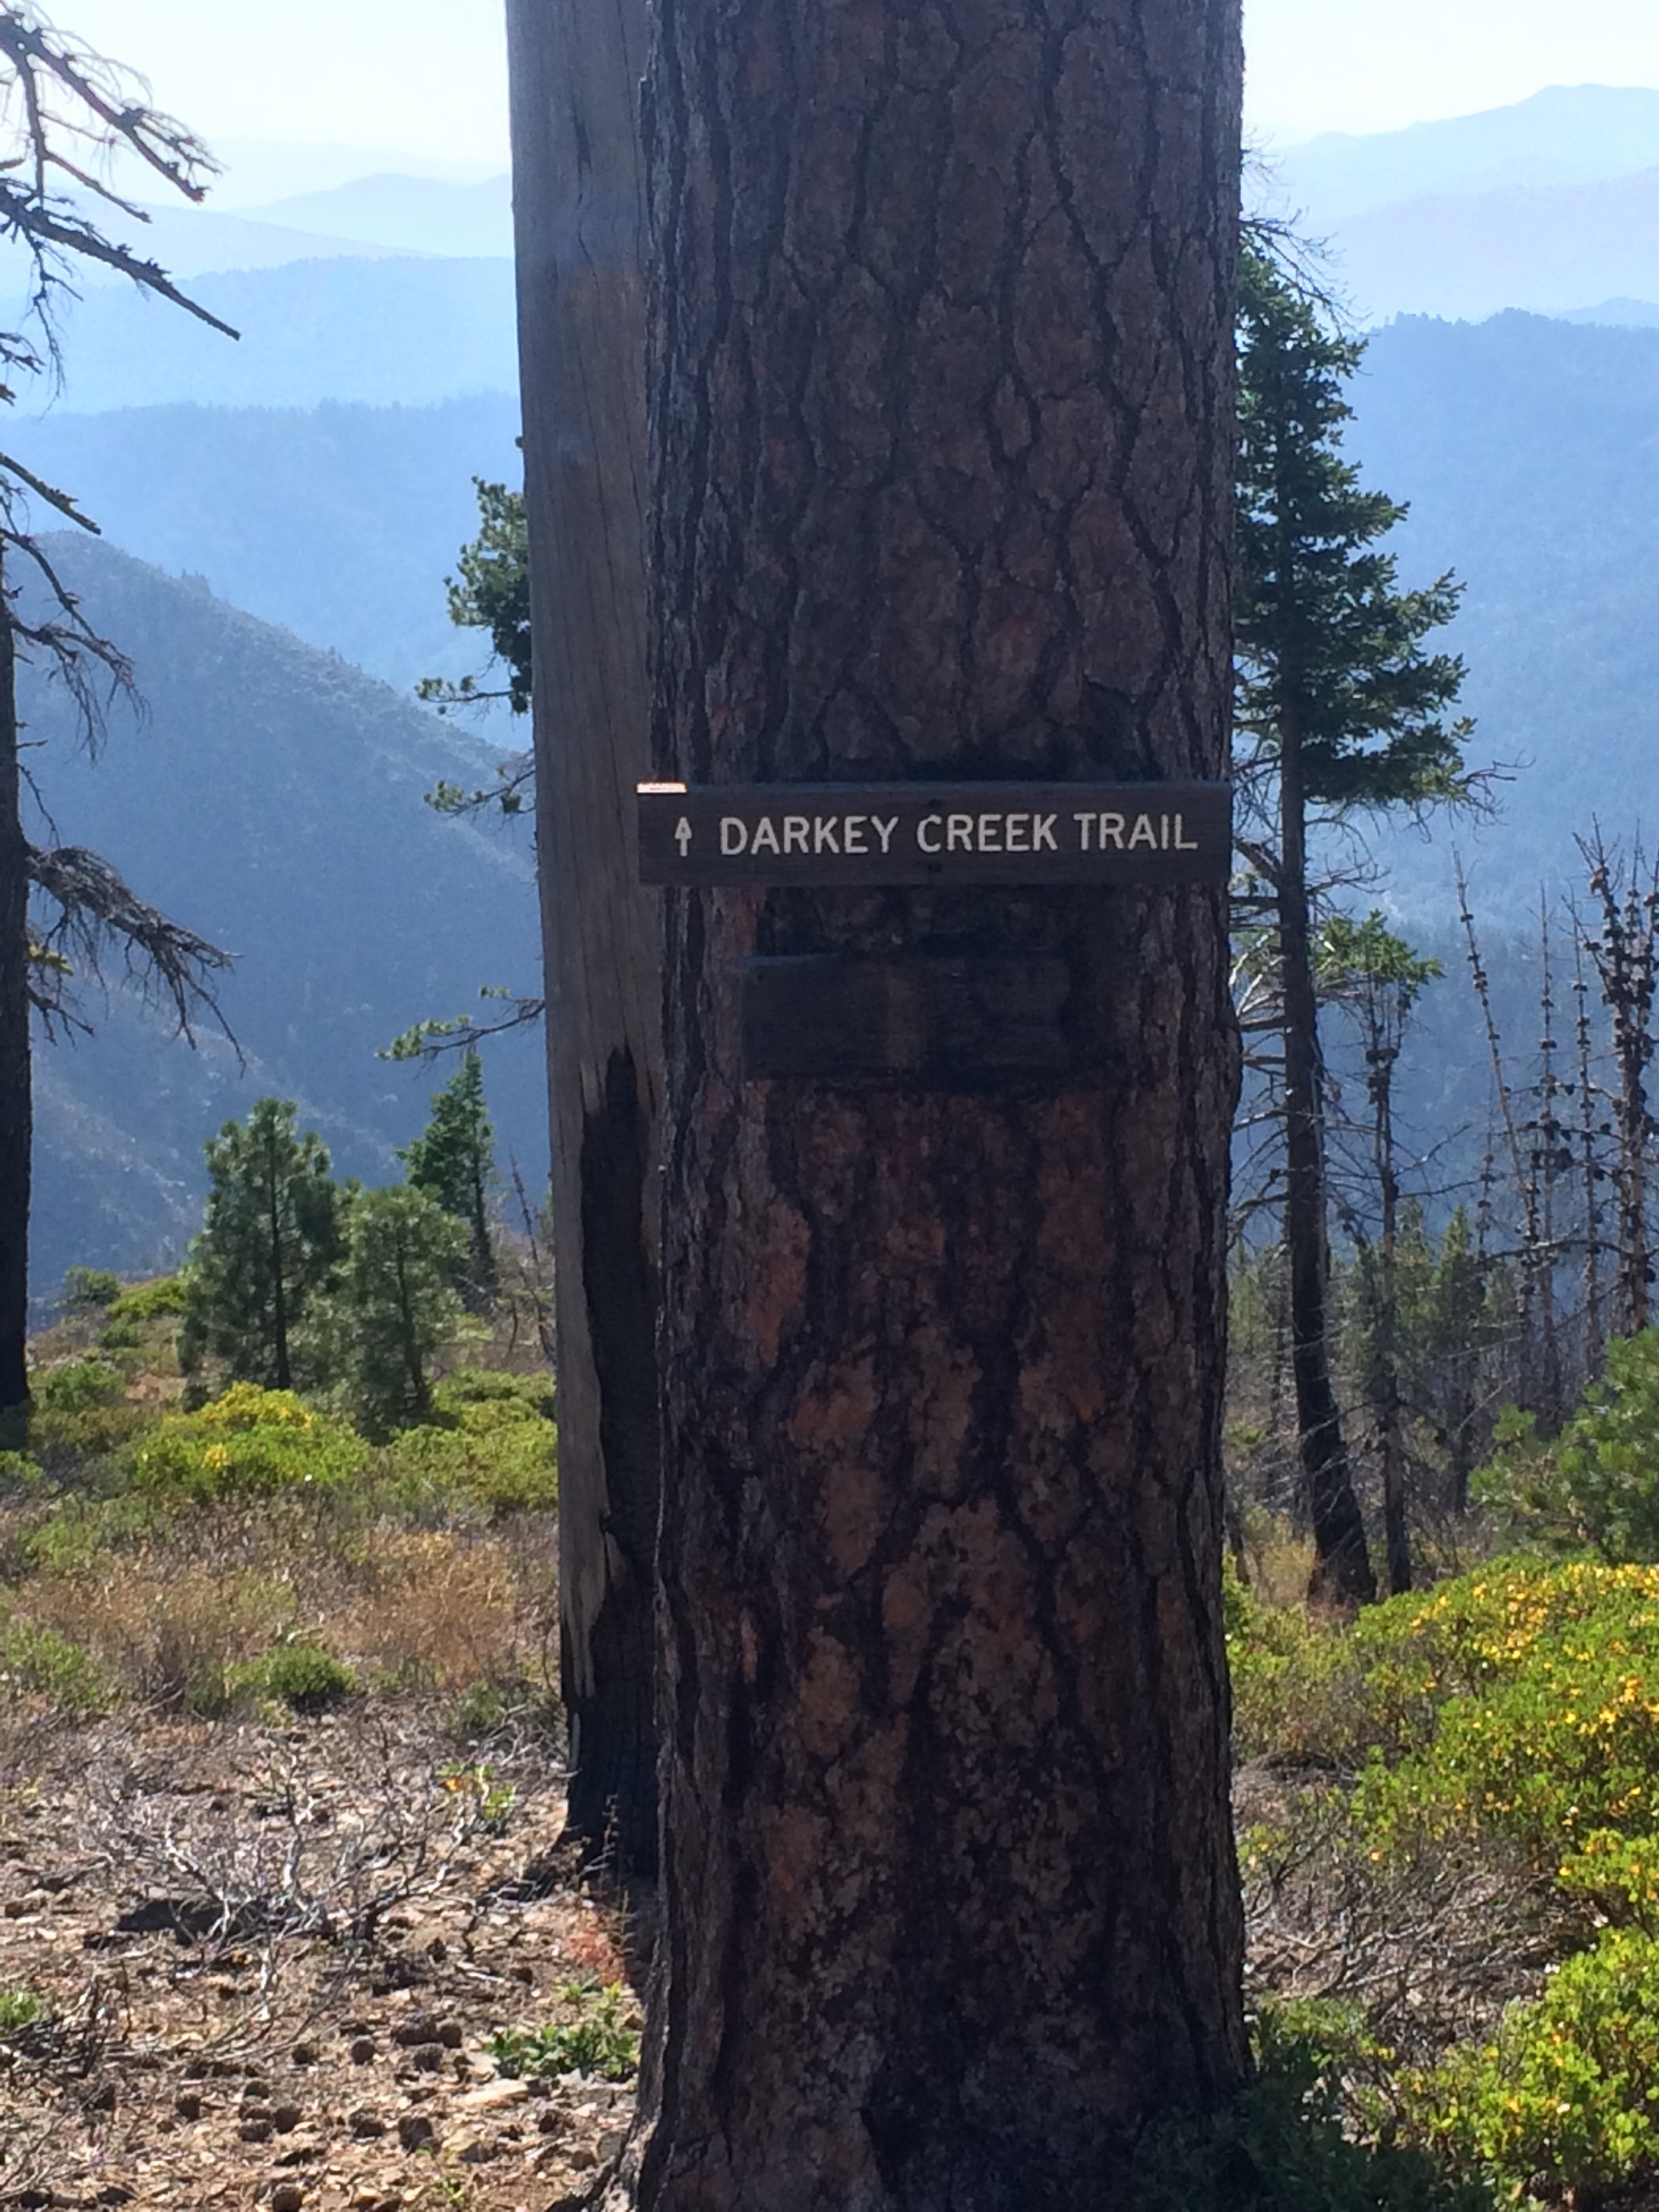 Seemingly racist trail name.